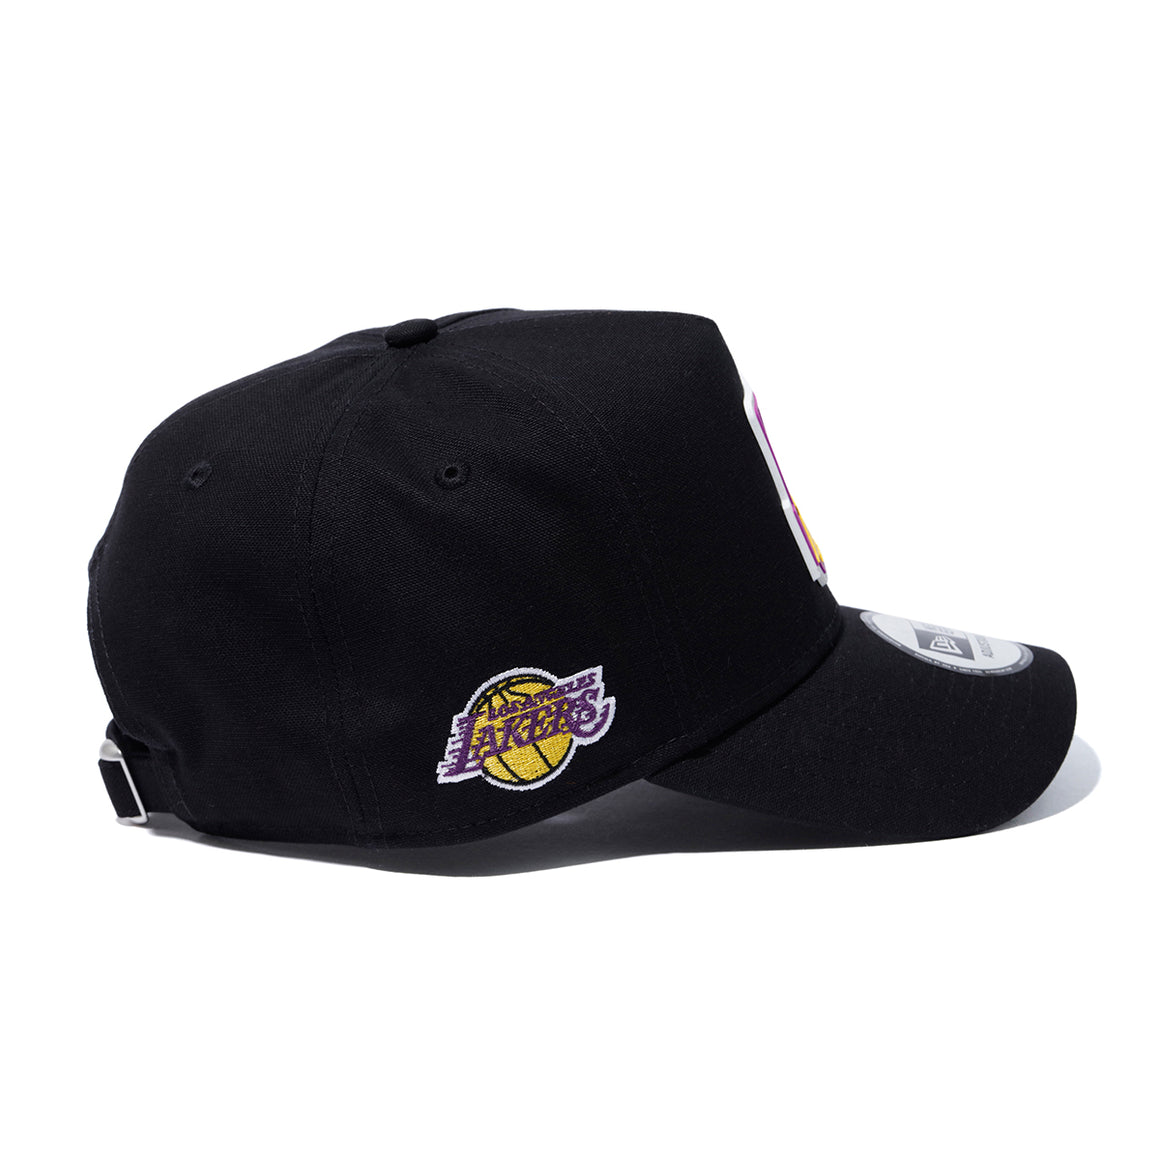 XLarge x New Era x NBA 940KF LA Lakers Cap, Accessories  - XLarge Brand